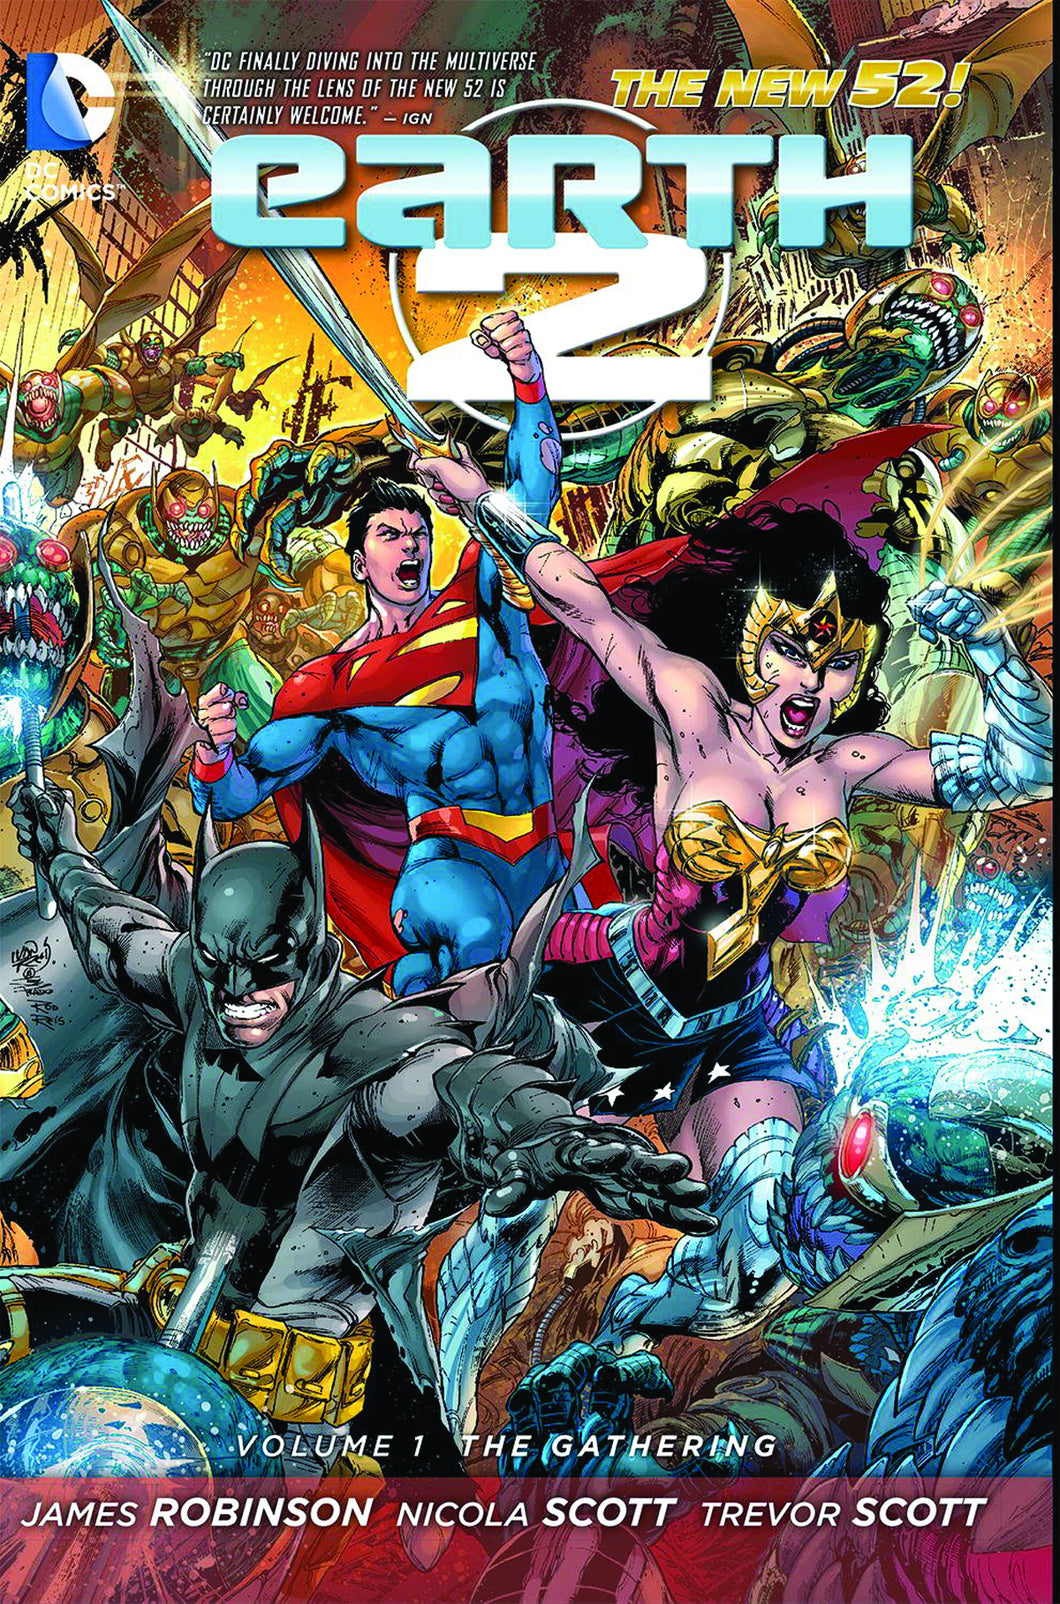 EARTH 2 TP VOL 01 THE GATHERING (N52)